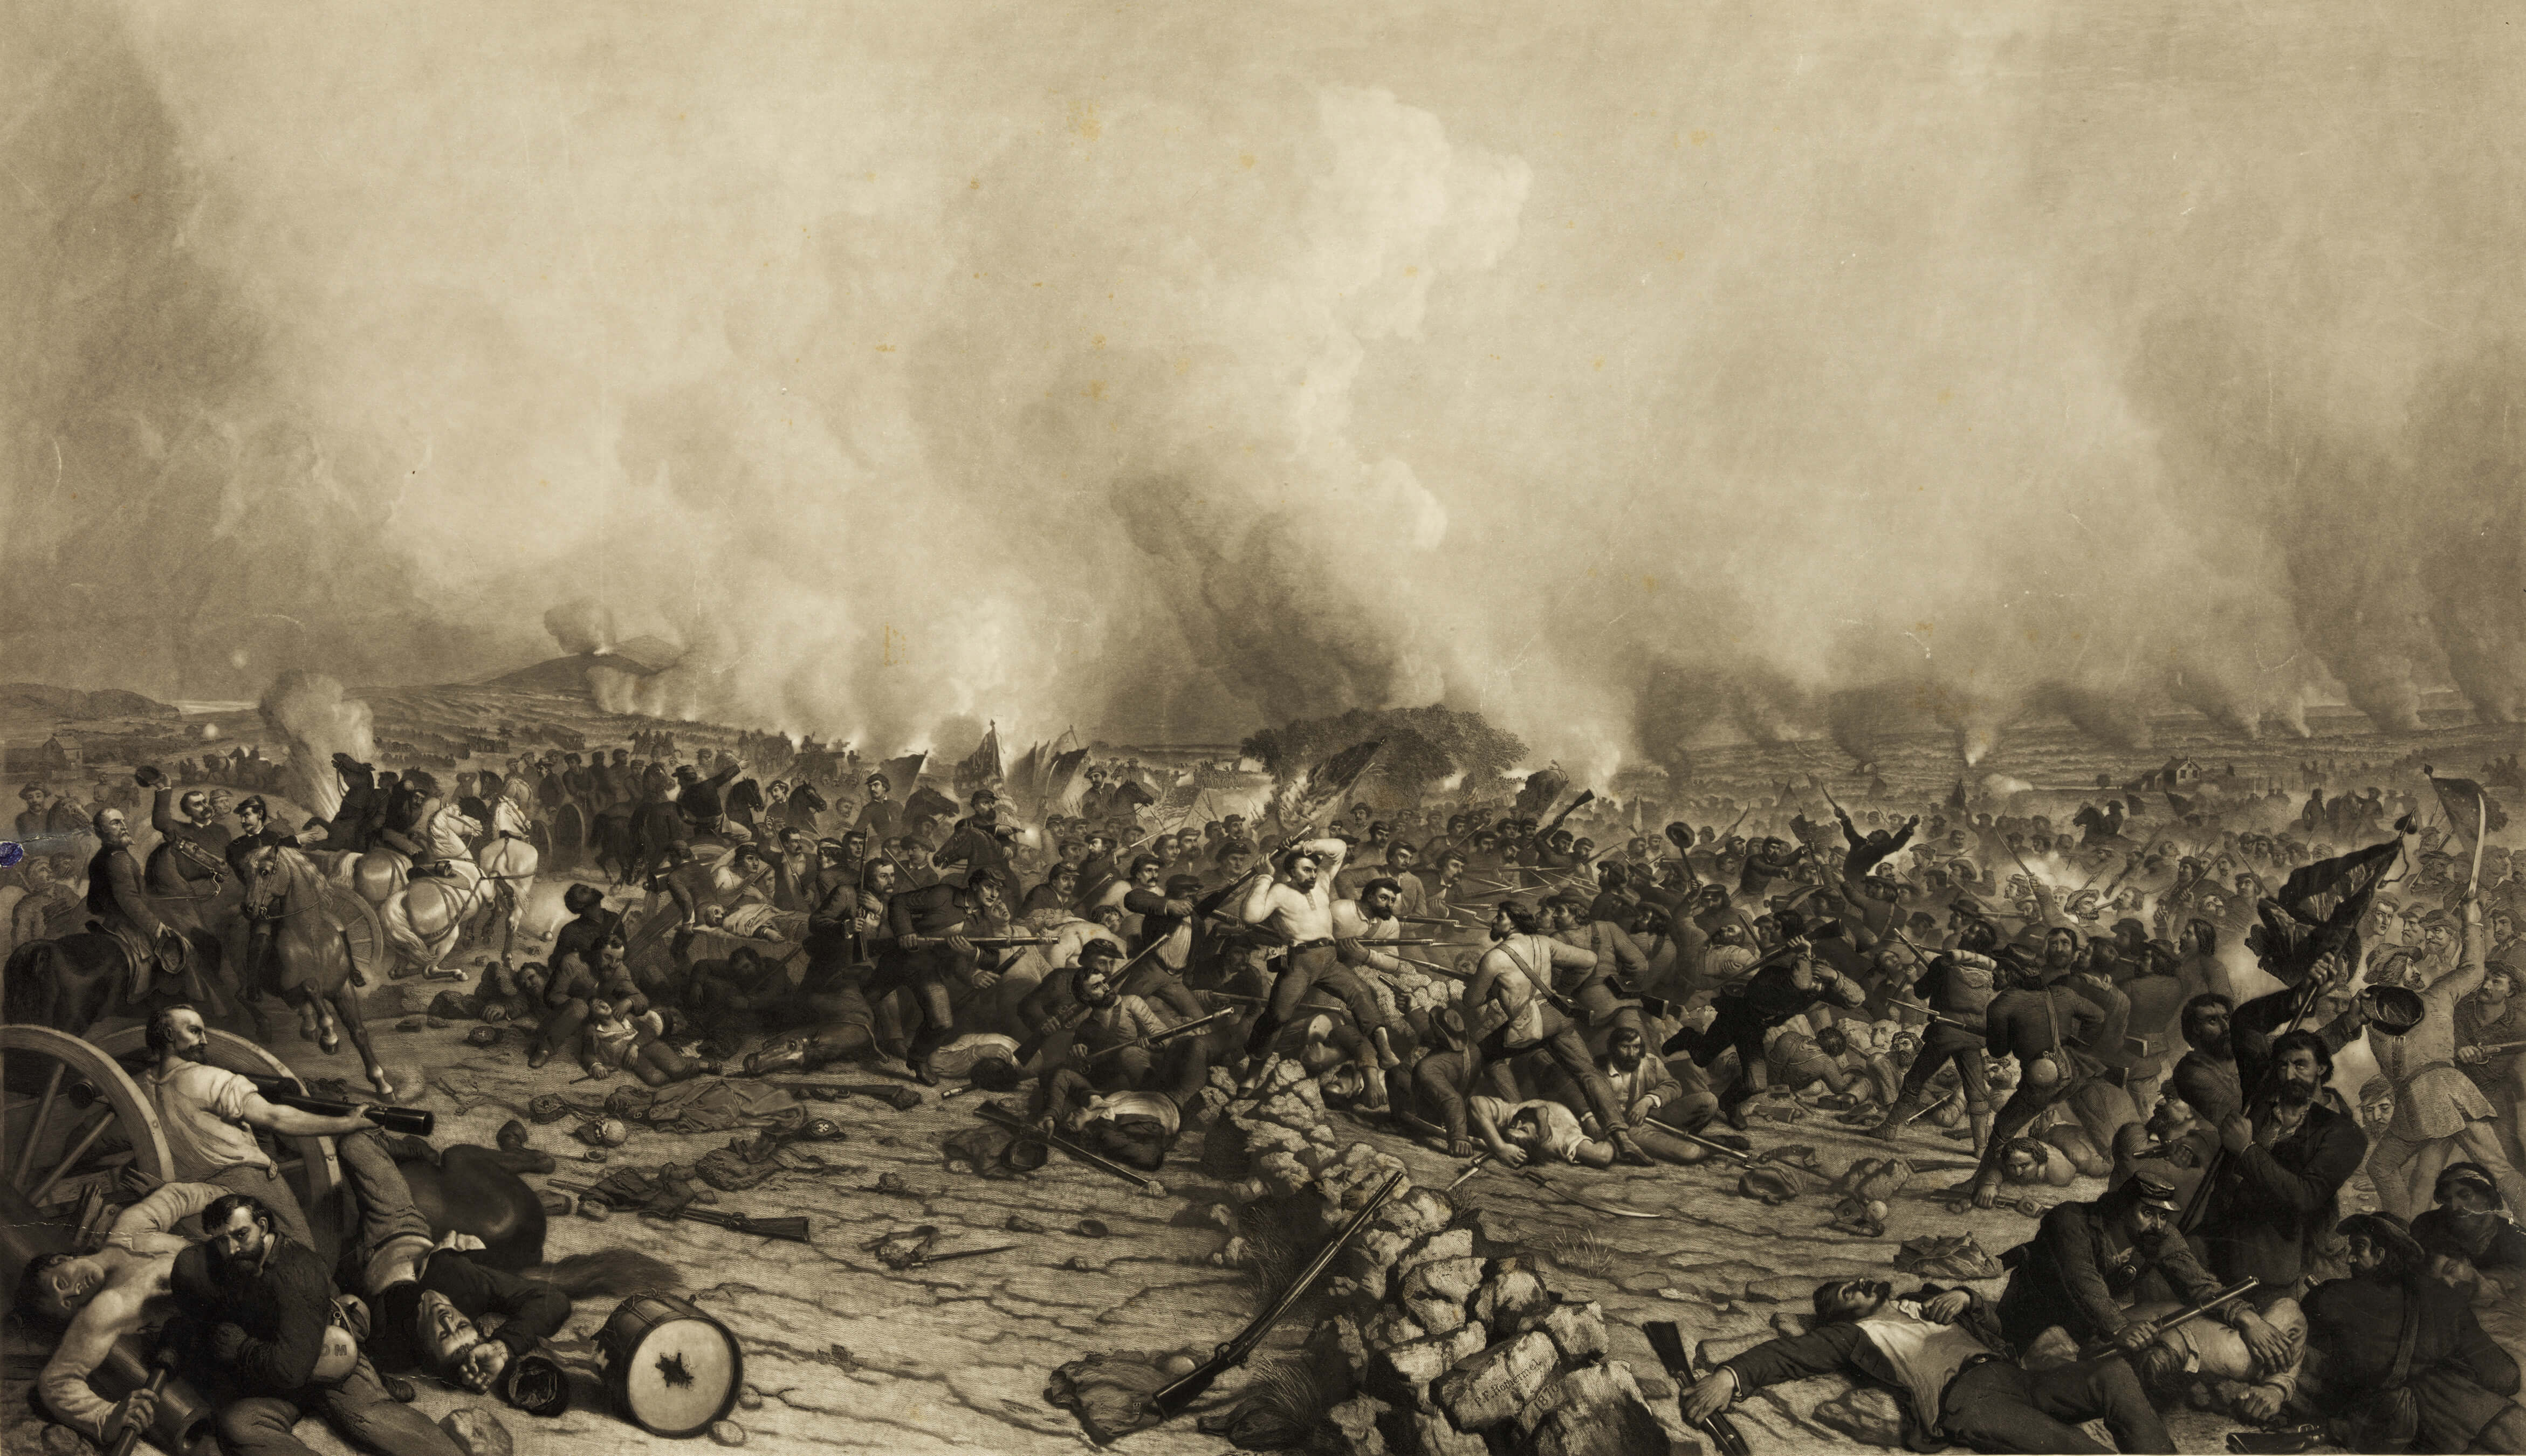 On This Day 152 Years Ago, The Battle Of Gettysburg Ended